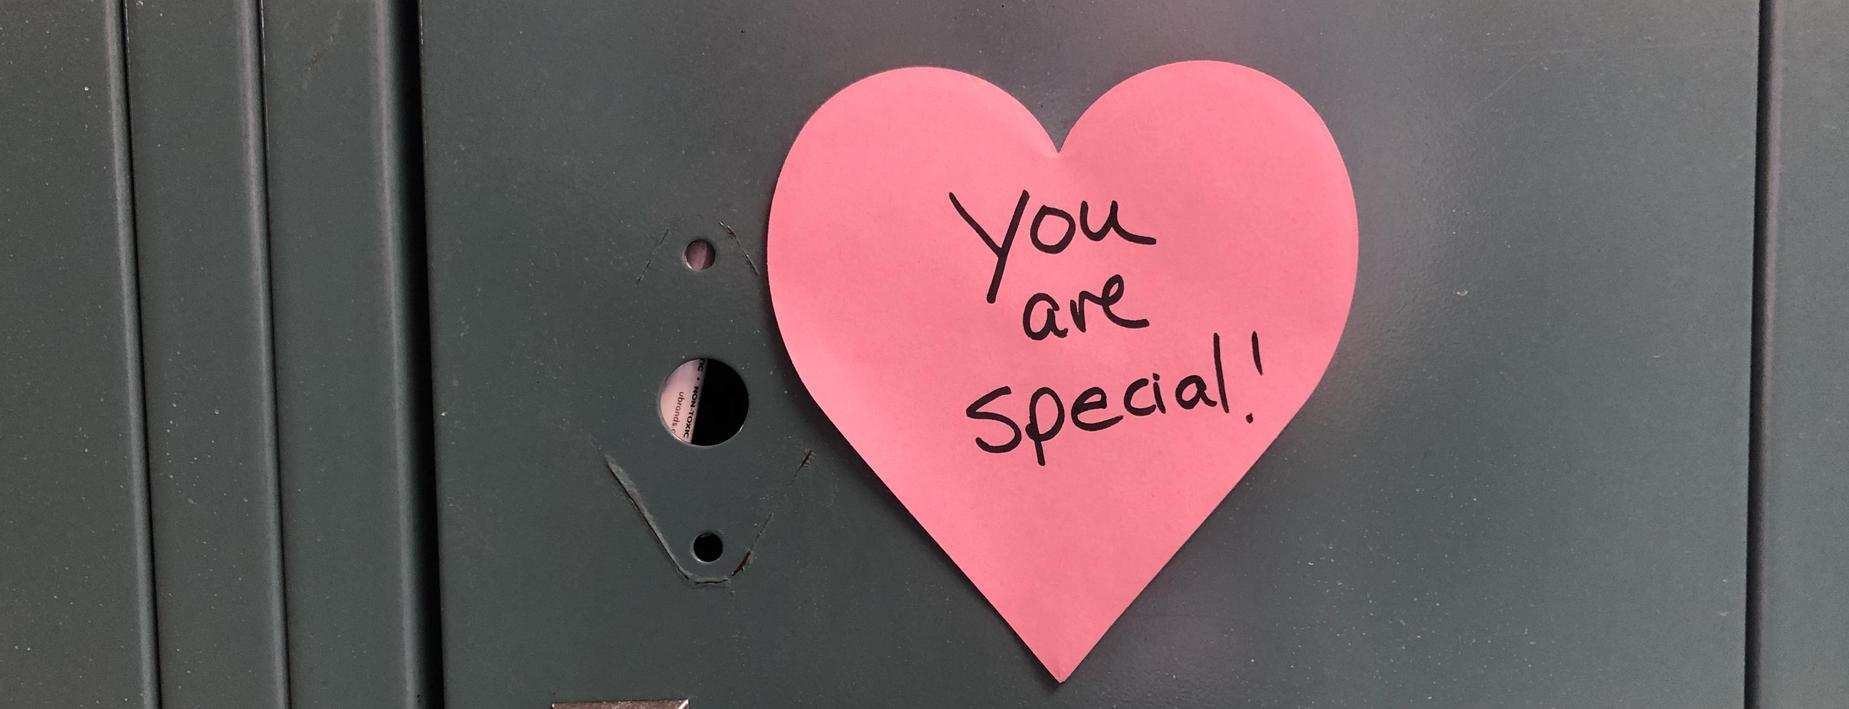 You are special heart